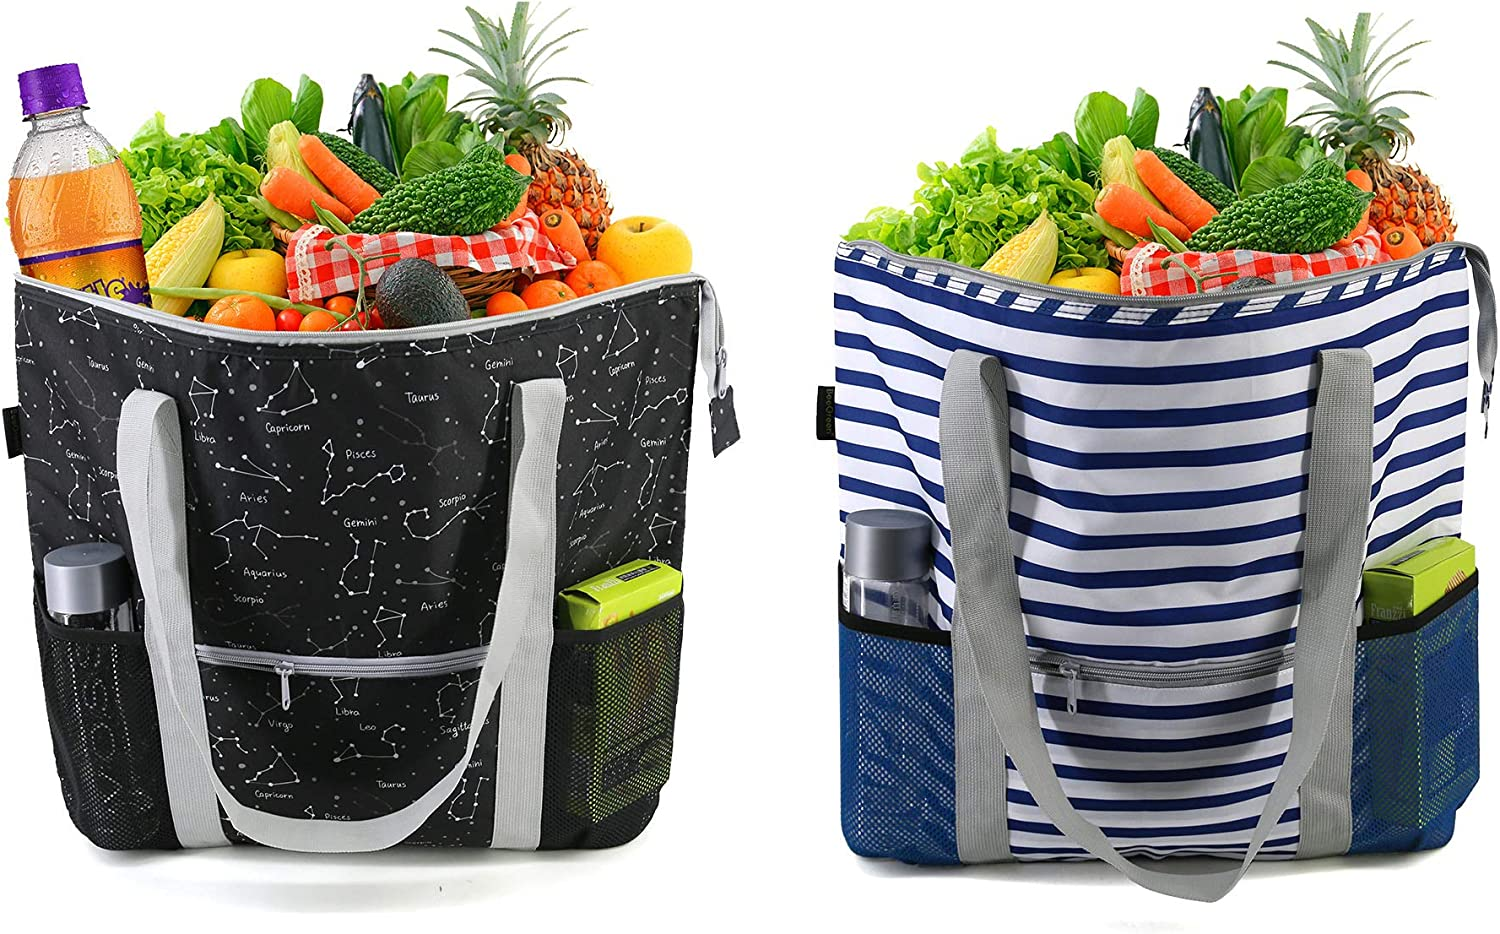 BeeGreen Cooler Tote Bags Bulk 2 Pack insulated Groceries Thermal Baggies for Cold and Hot Food Delivery Heavy Duty Groceries Reusable Freezer Totes with Zippered Top Long Handles Black Blue White